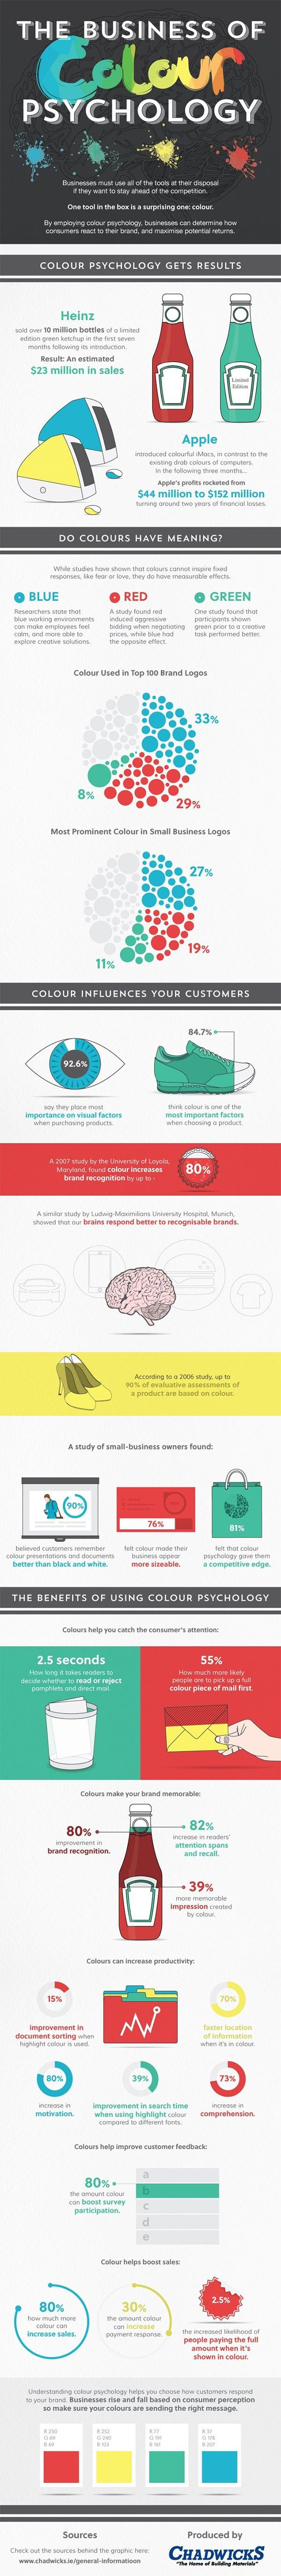 29 Facts About Colour Psychology That Will Make You Change Your Website